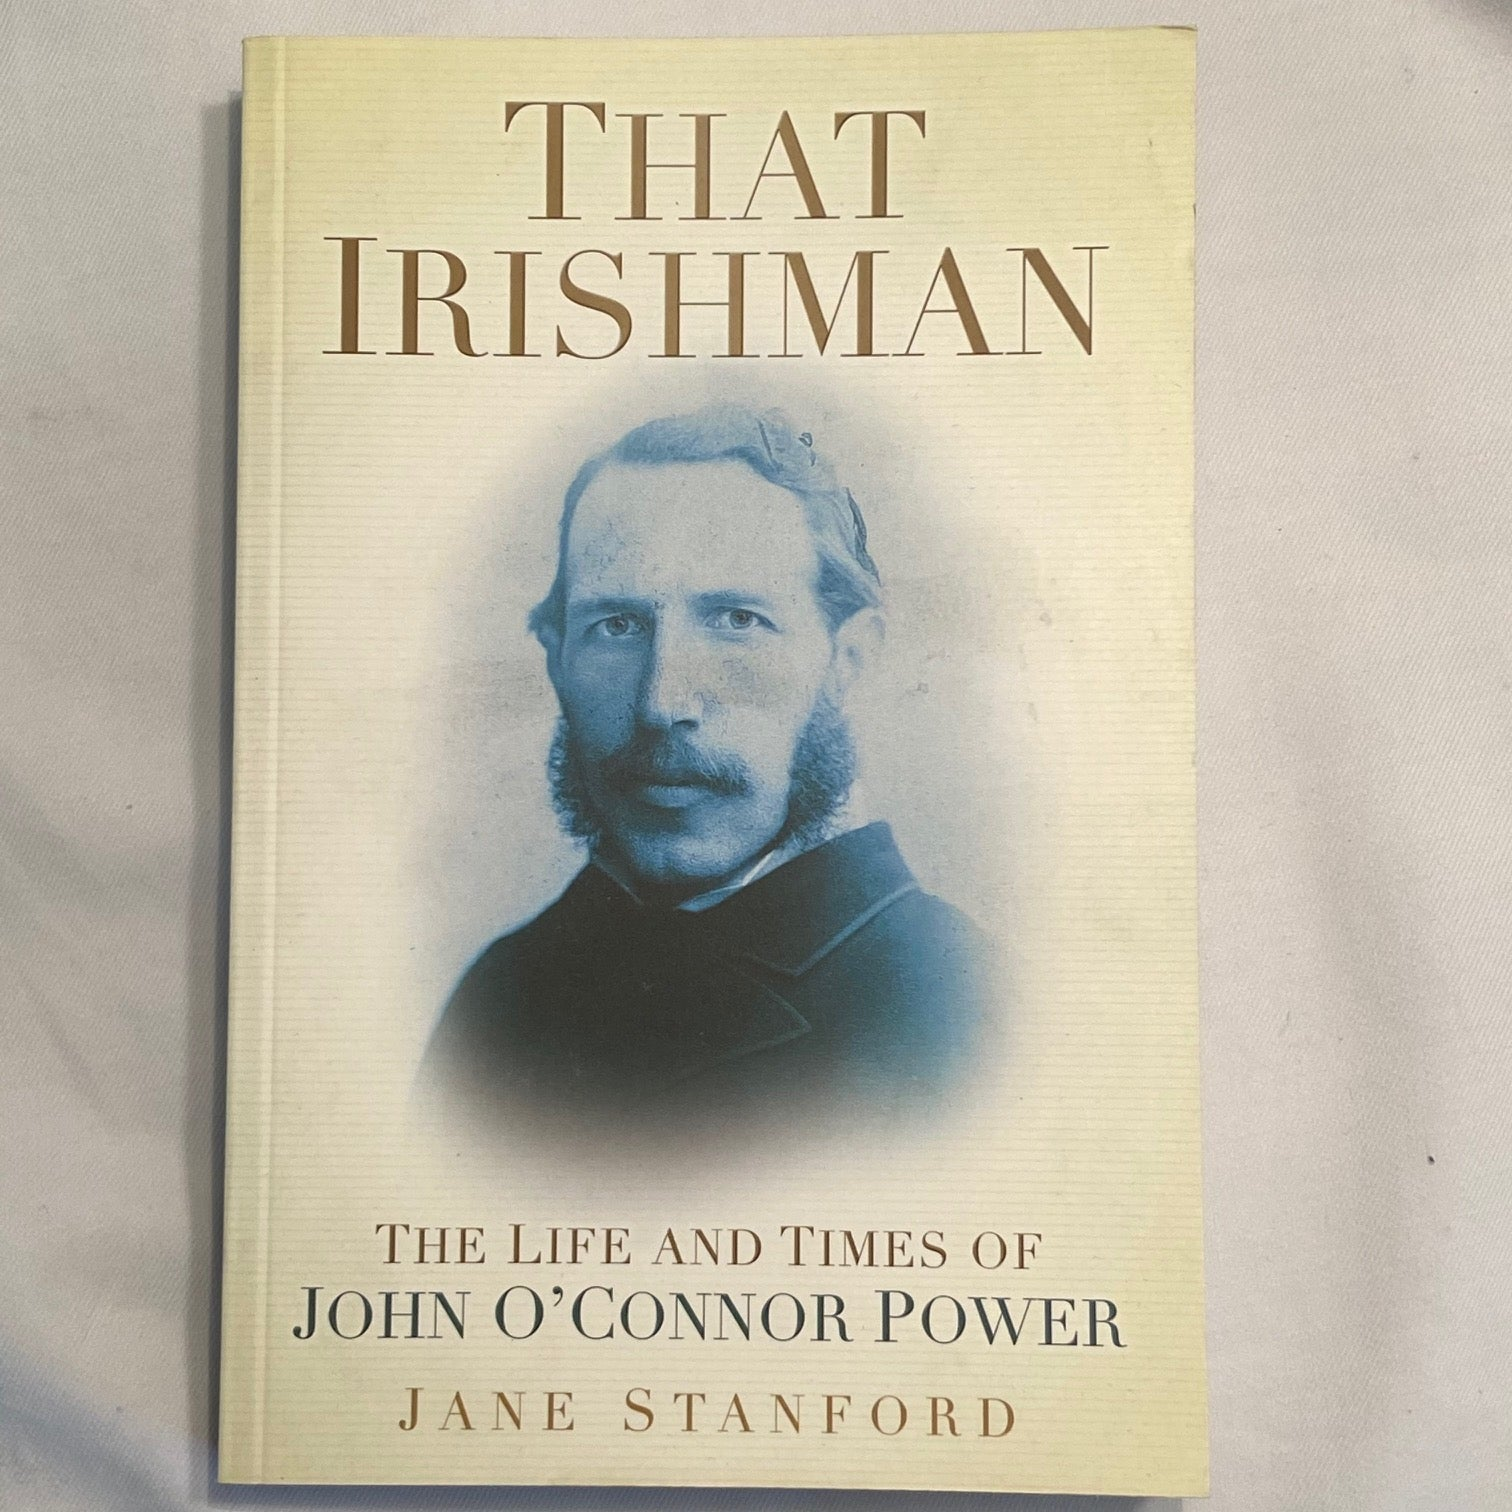 Image of That Irishman - the Life and Times of John O'Connor Power